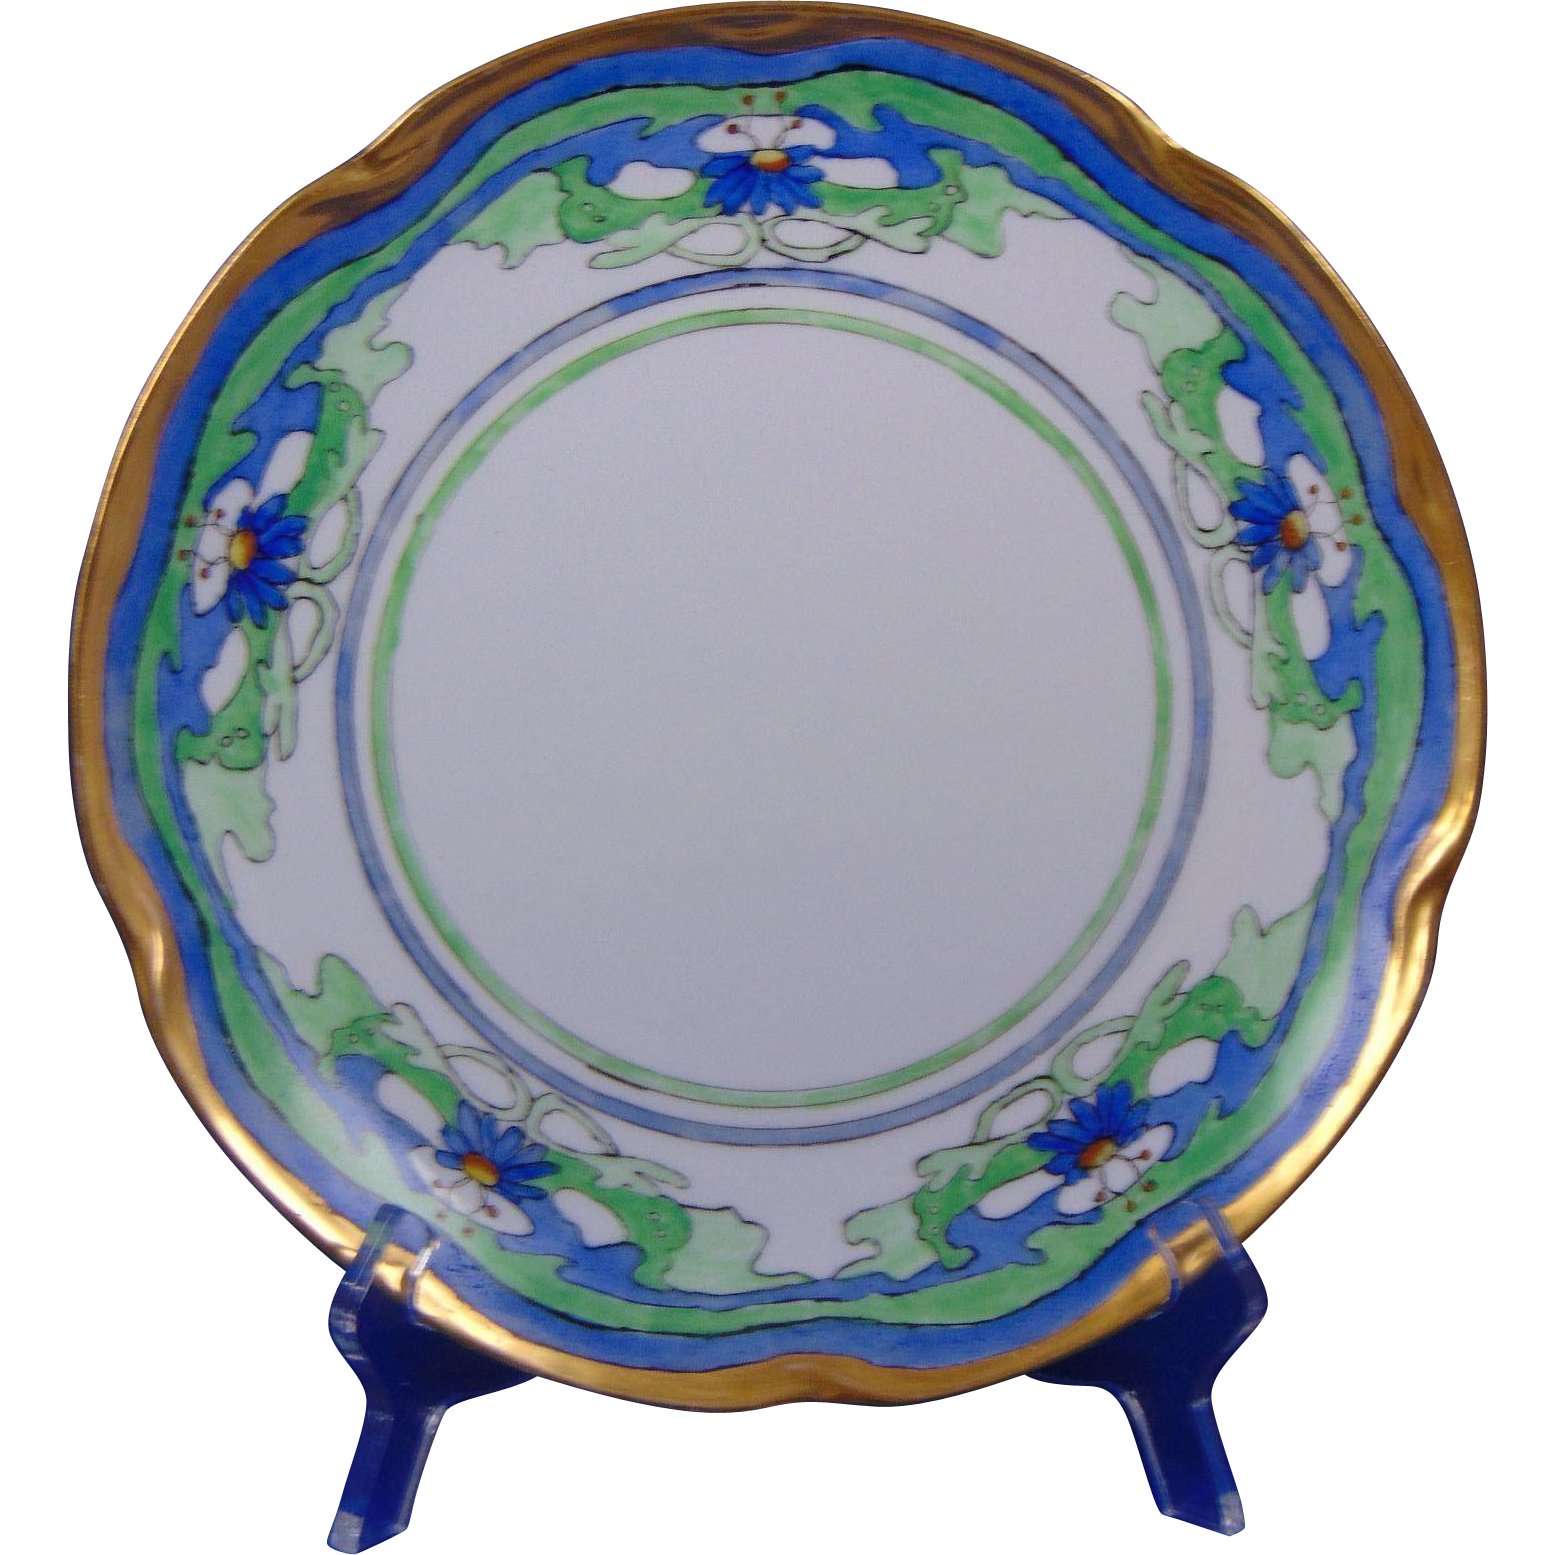 Jaeger & Co. Bavaria Arts & Crafts Floral Motif Plate (Signed/c.1909-1930) - Keramic Studio Design